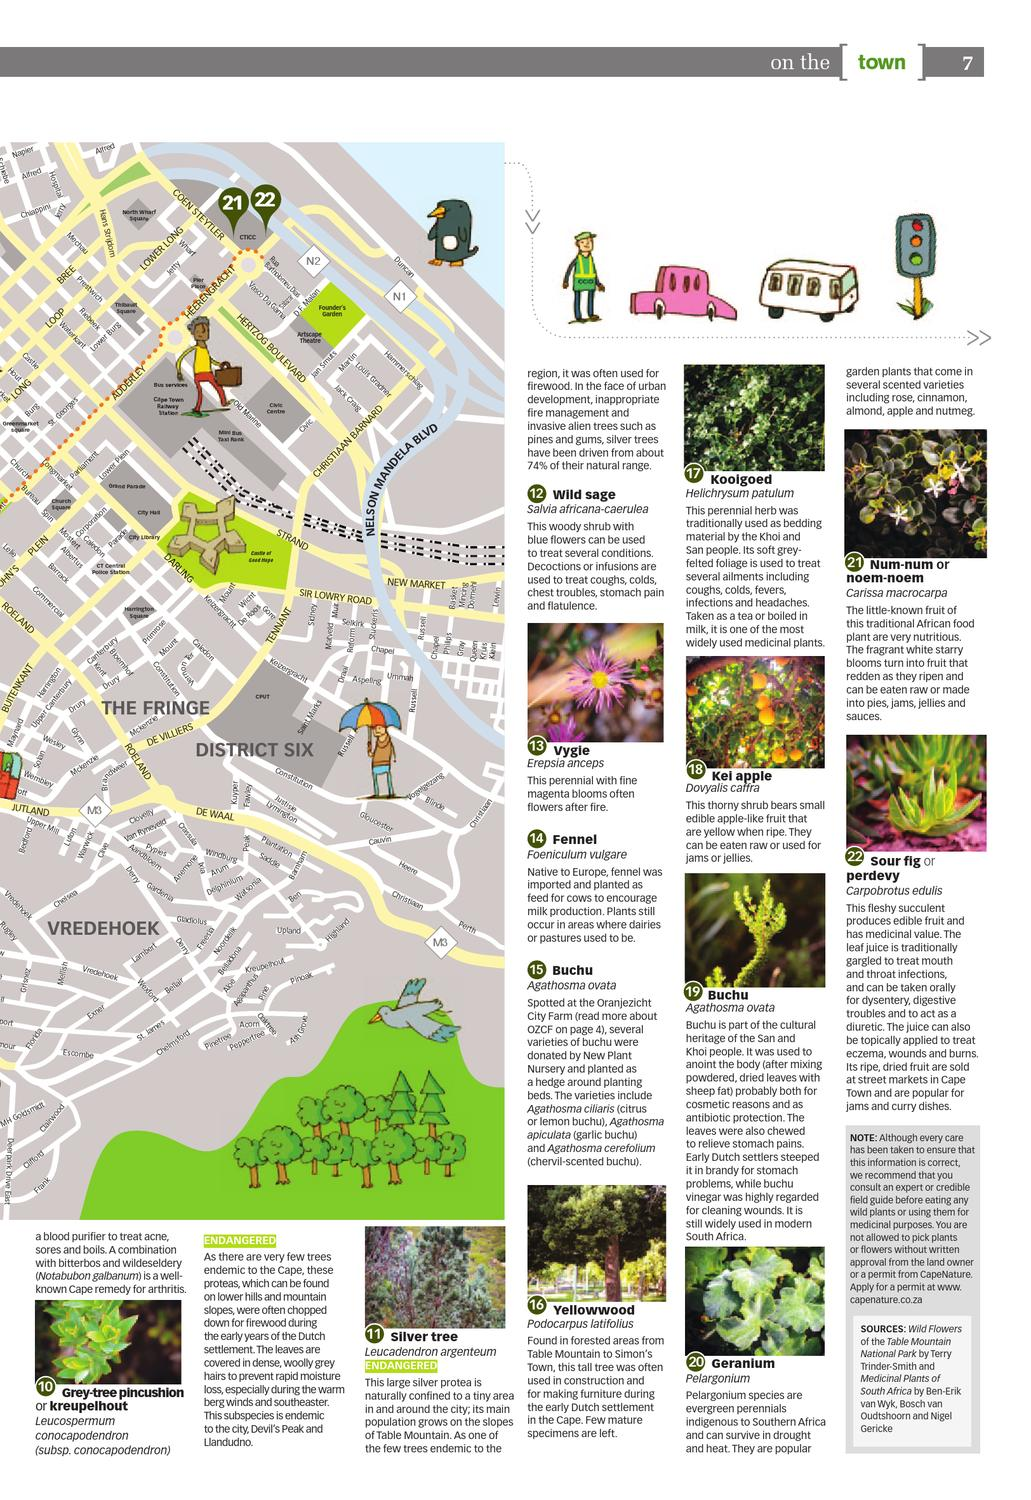 City Views: Cape Town as a biodiverse city by Cape Town Partnership